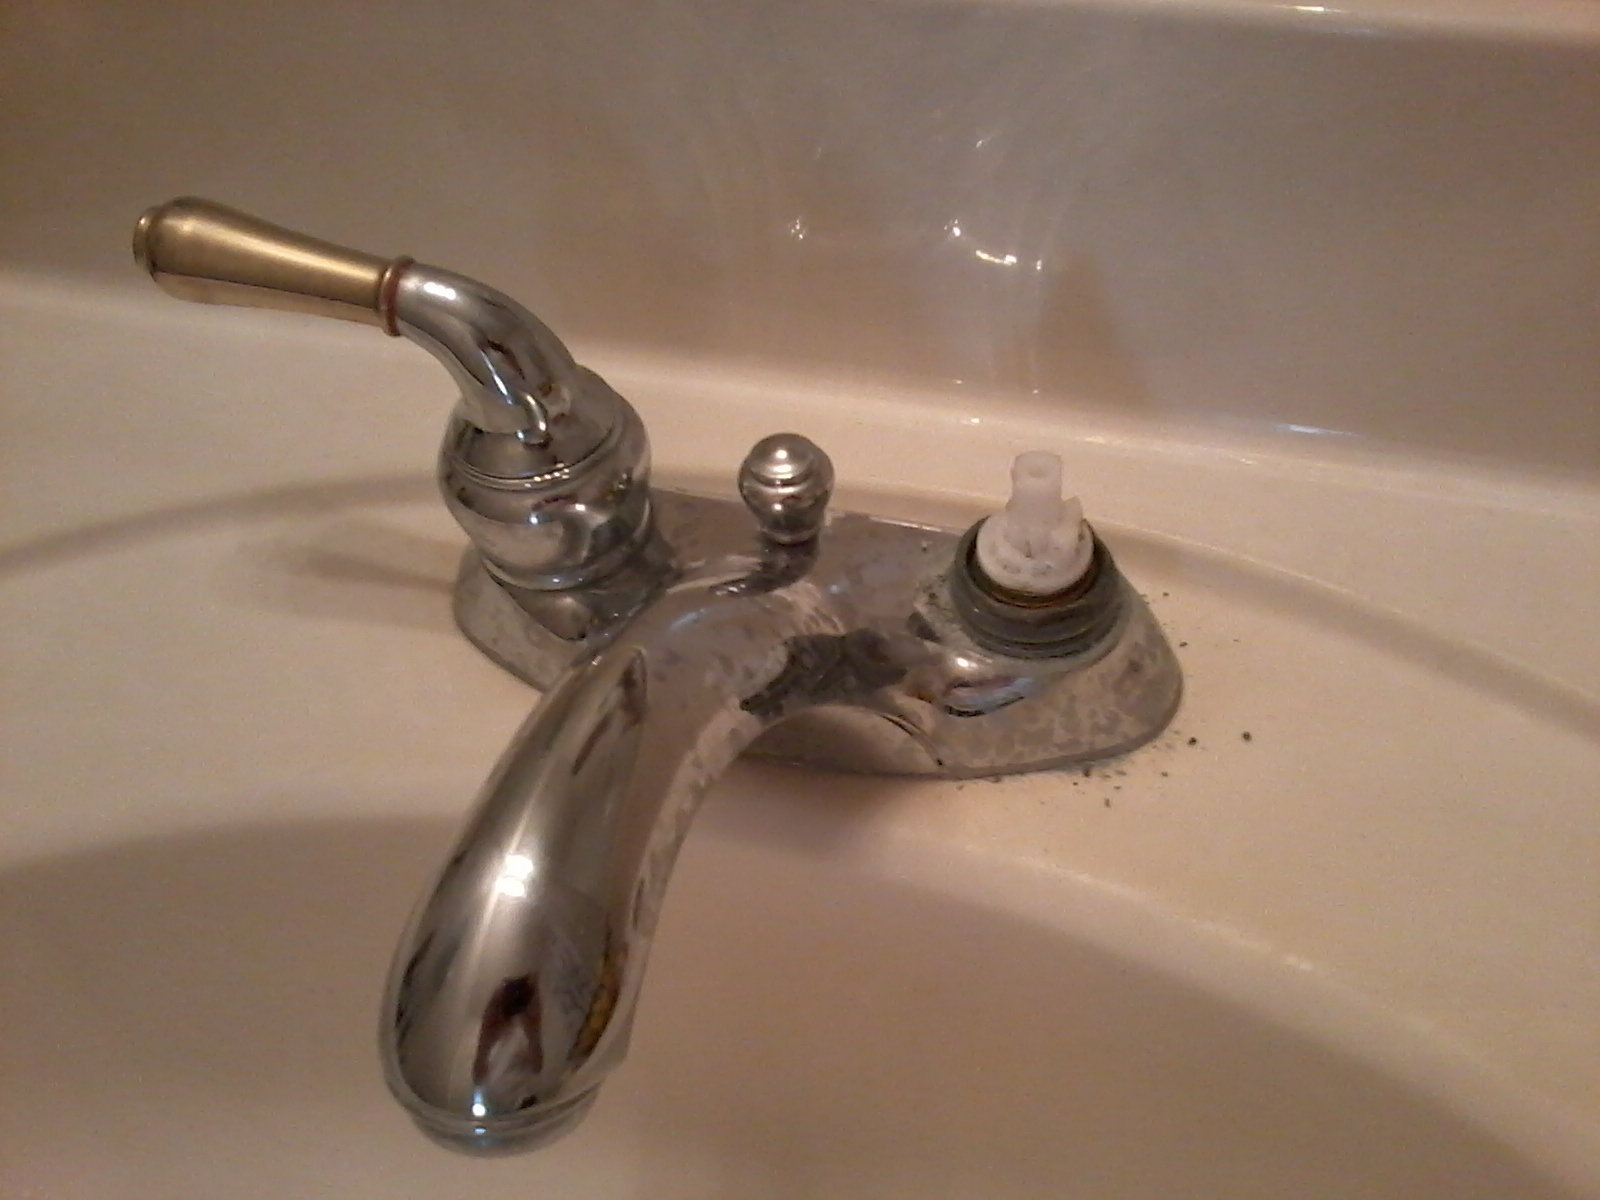 replacement complex s diagram wayne repair bathroom be more faucets can shower expected blog than plumbing faucet